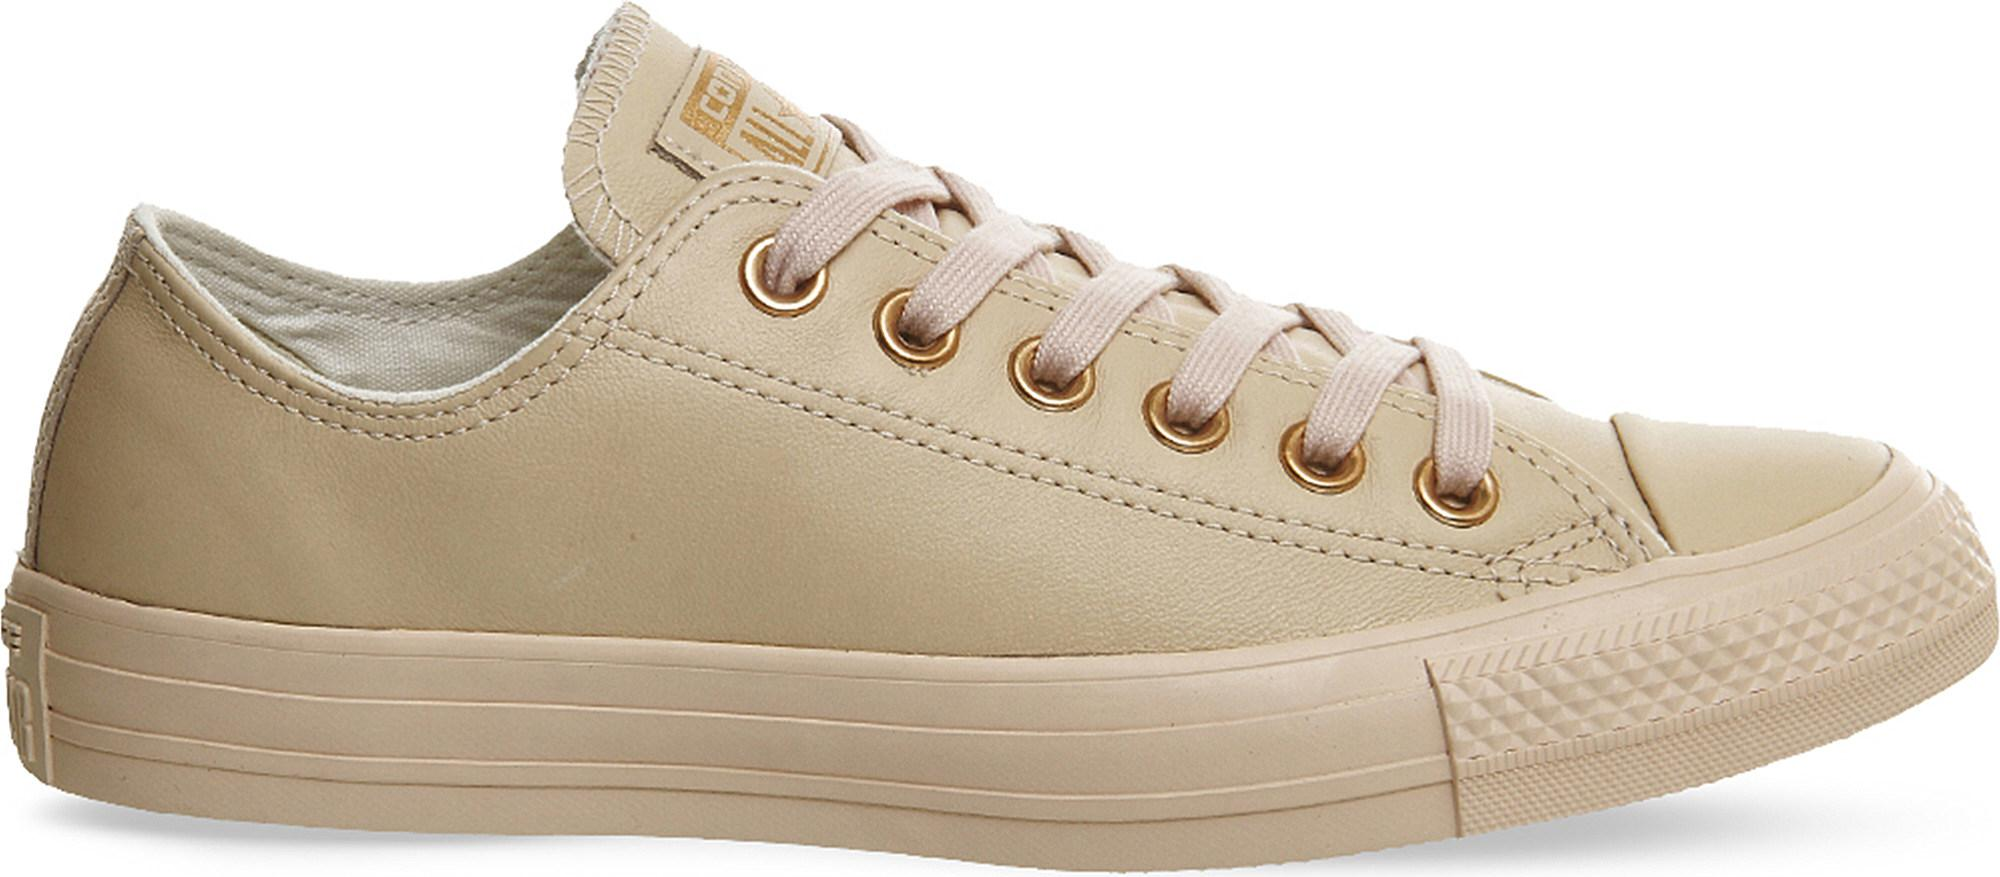 fc10de3b40bf ... norway lyst converse all star low top leather trainers in natural for  men b9877 e4cd8